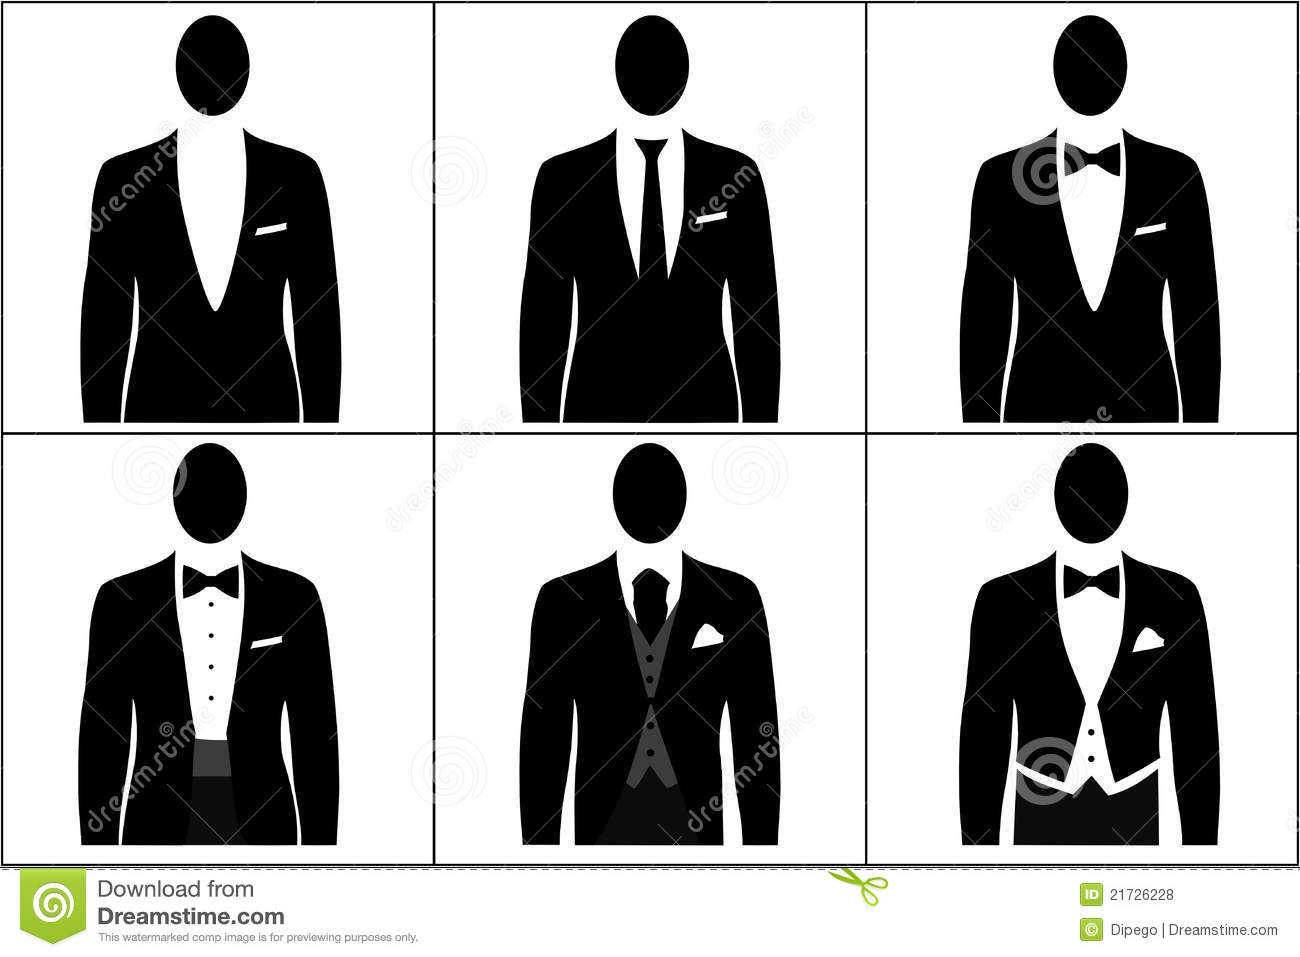 Simple Sample Dress Code Policy for Business Attire